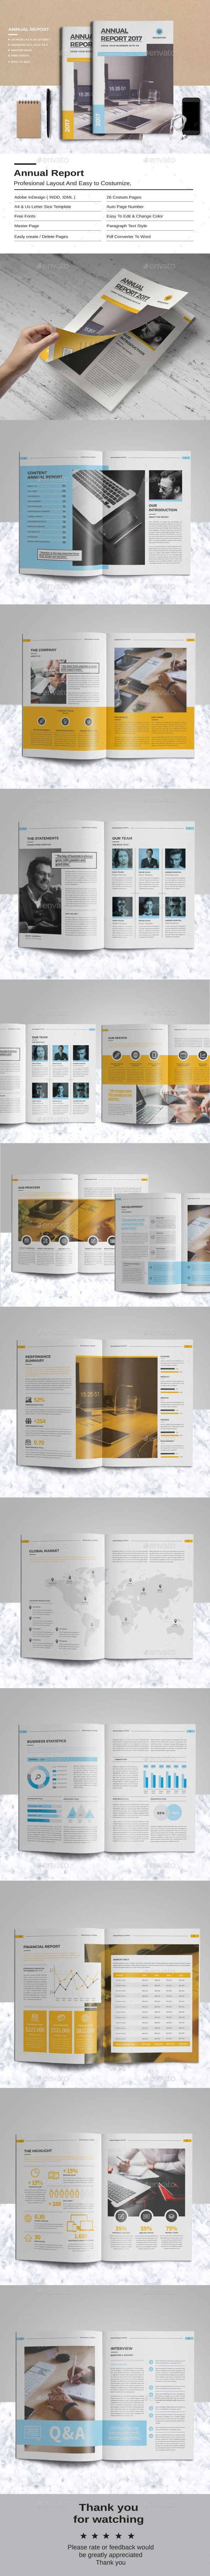 Annual Report | Annual reports, Adobe indesign and Adobe